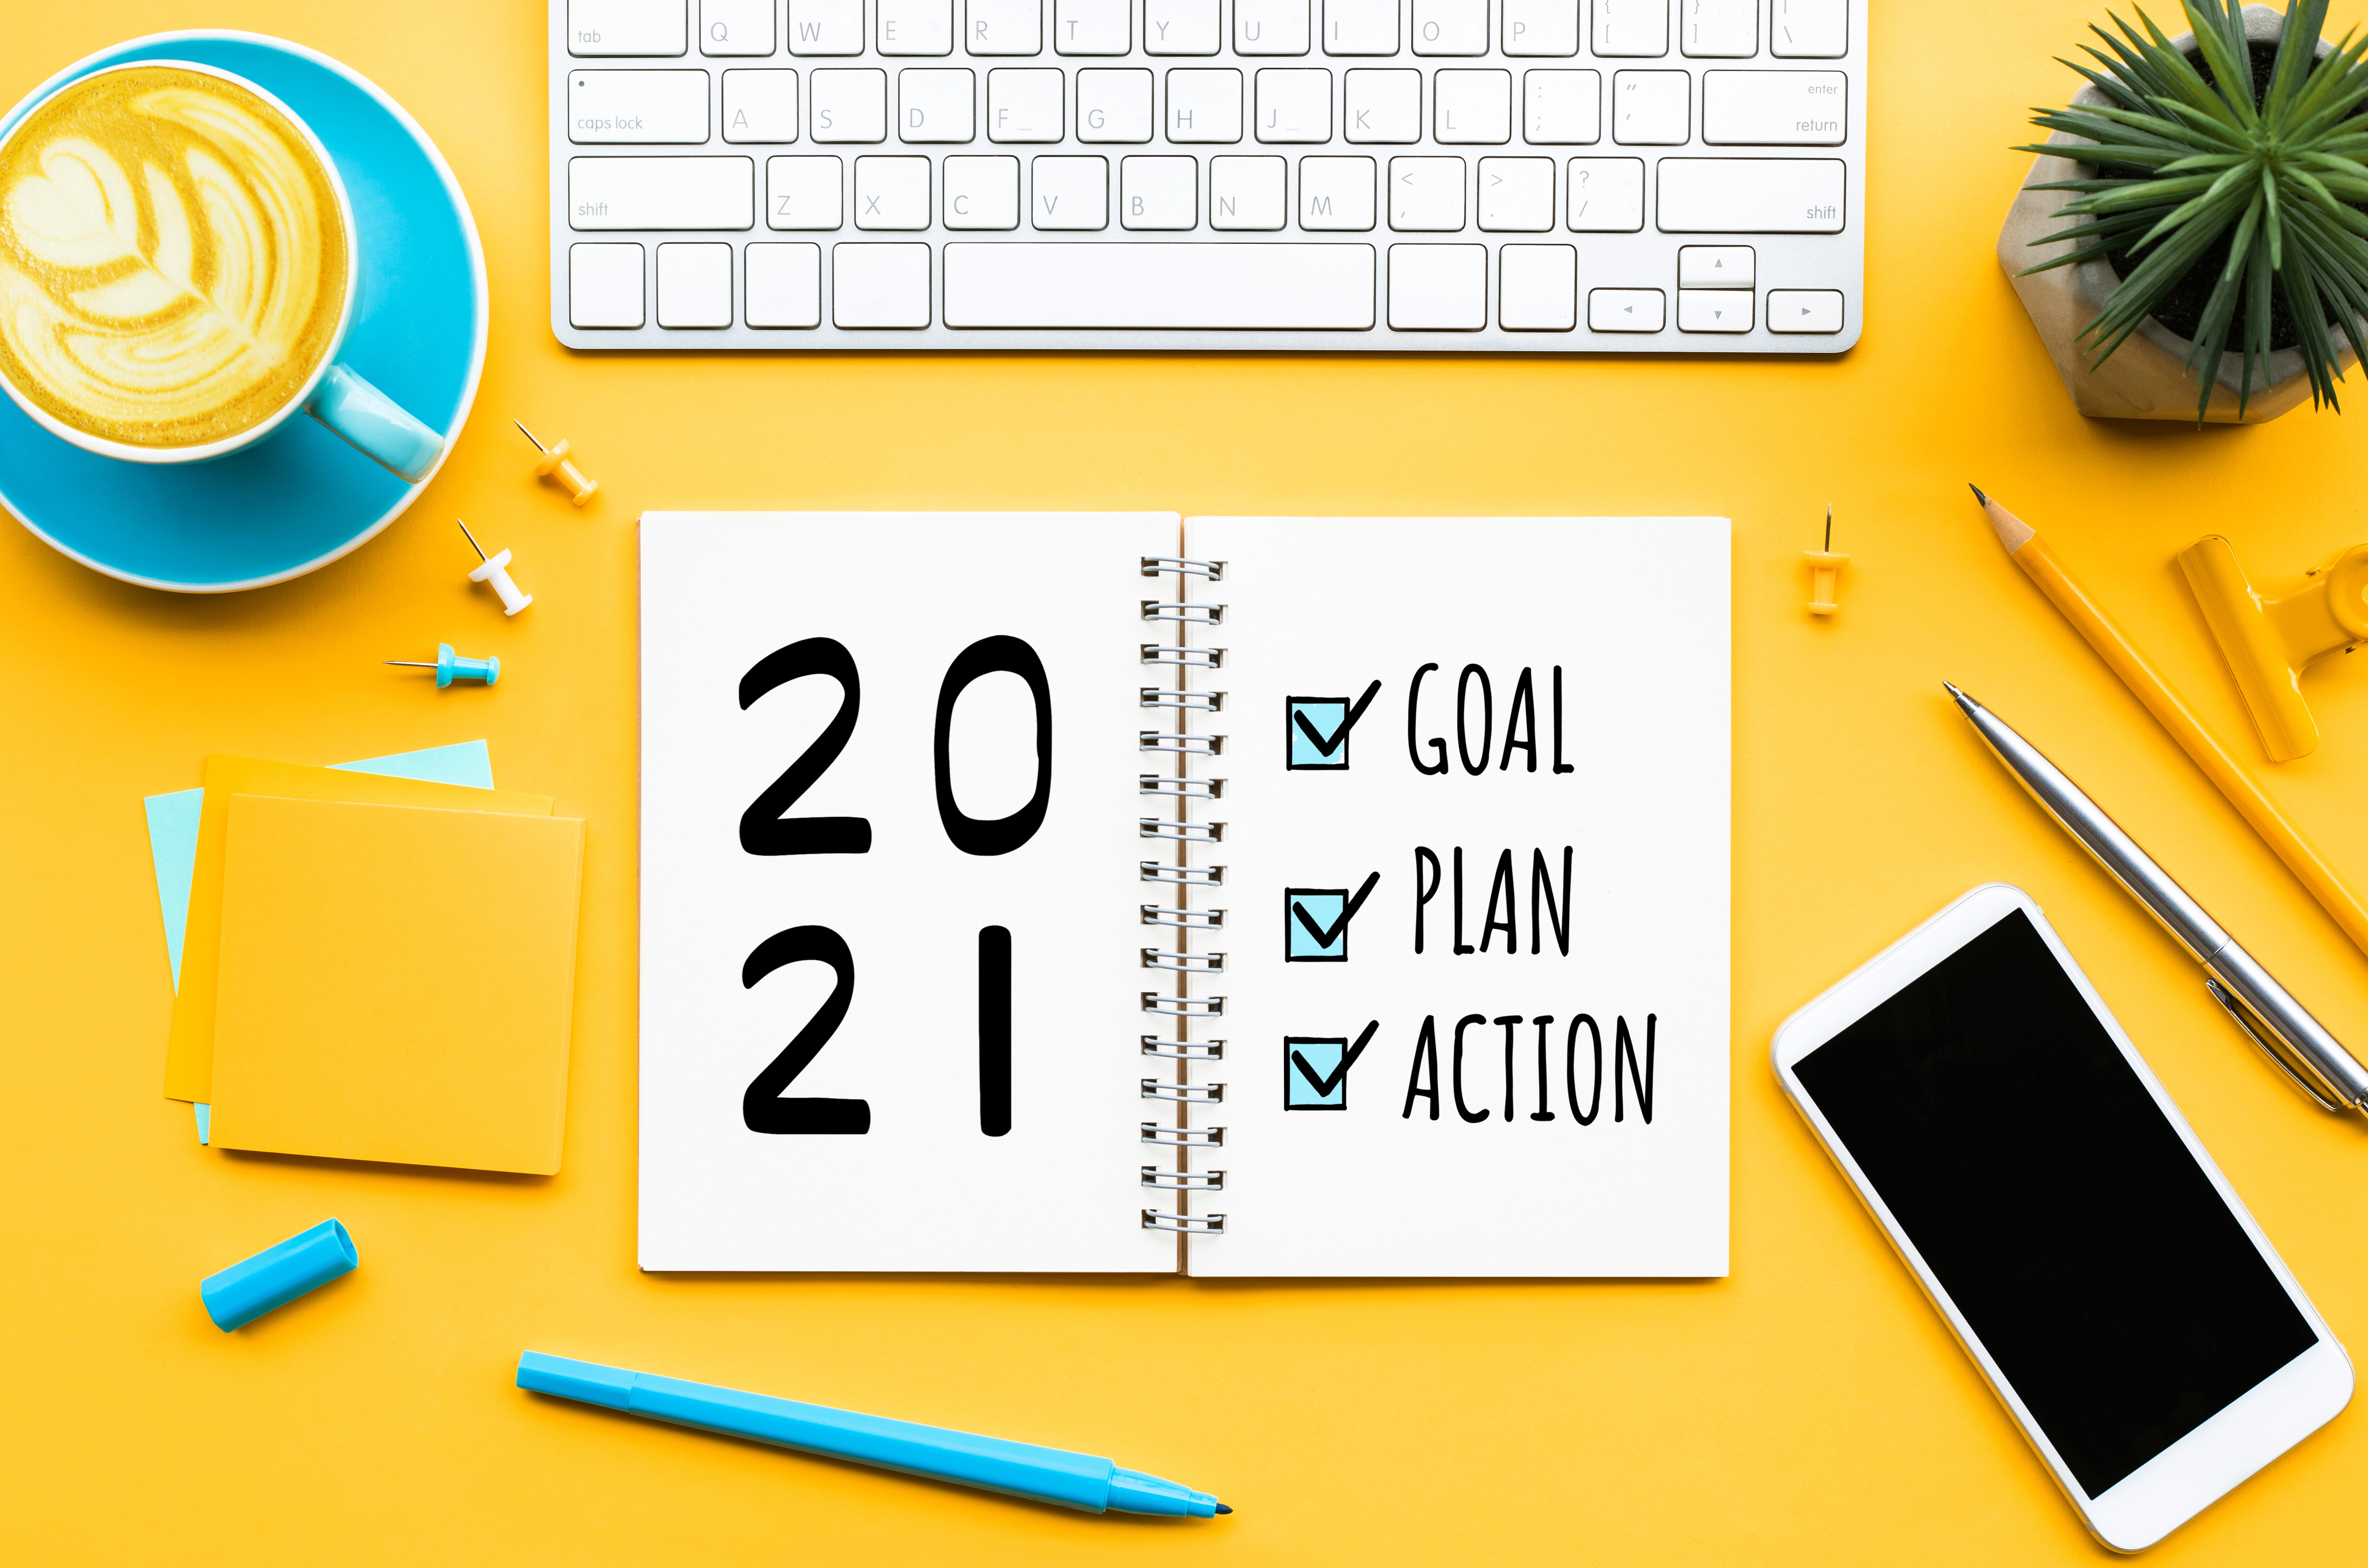 Goal Plan Action 2021 planner on a desk, surrounded by supplies